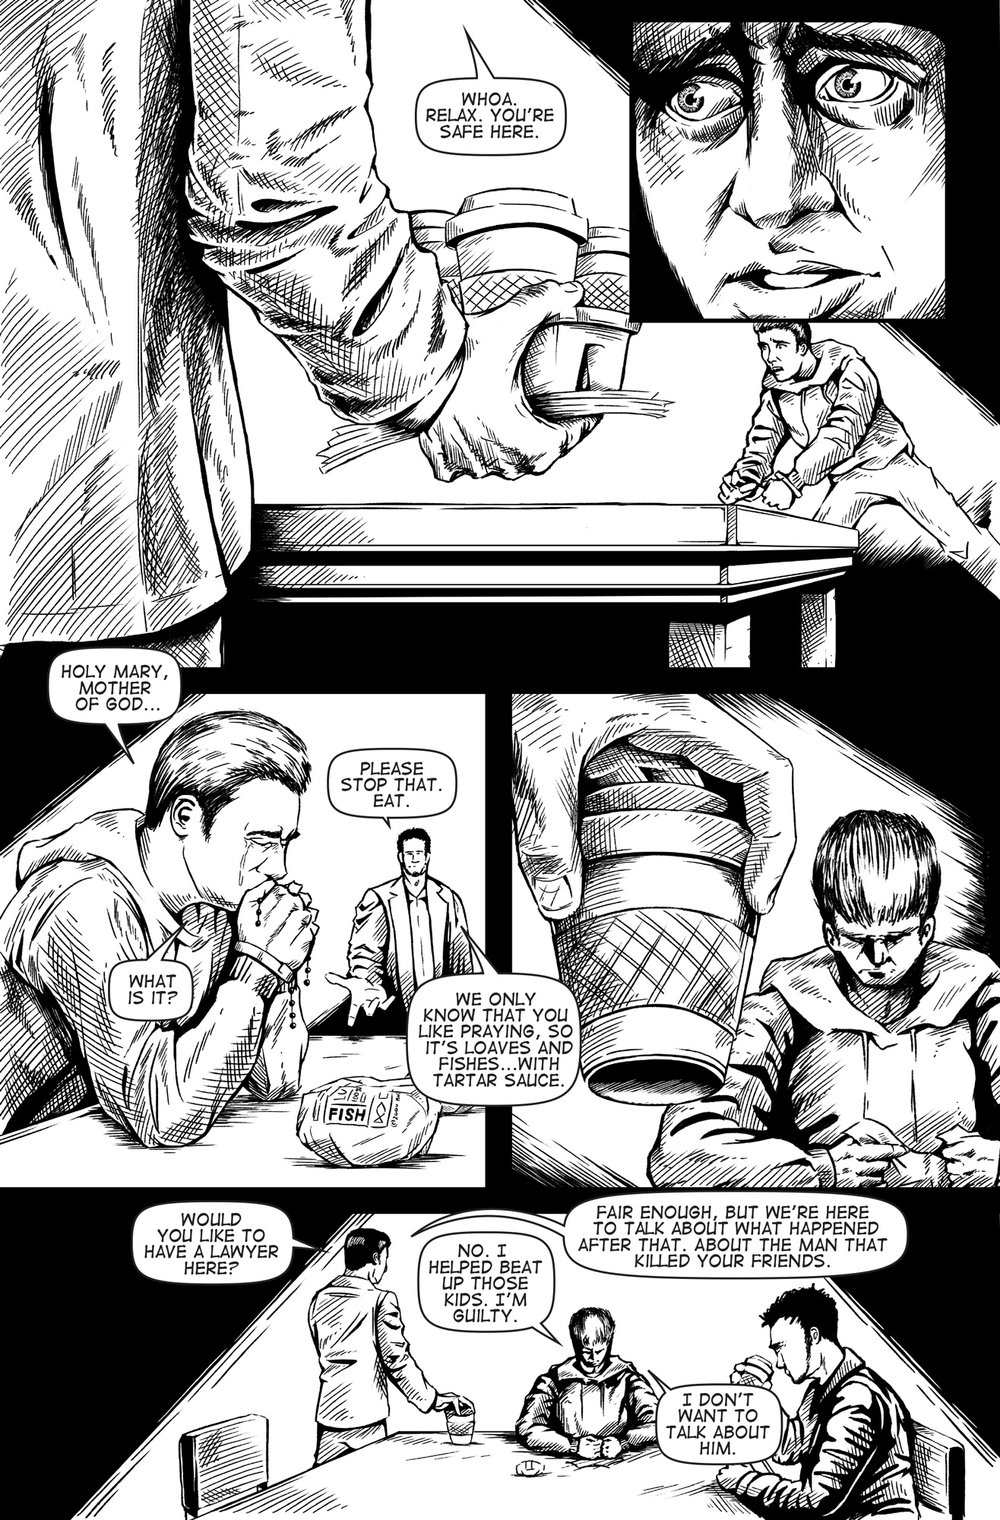 Soulbinder Issue 2, Page 2